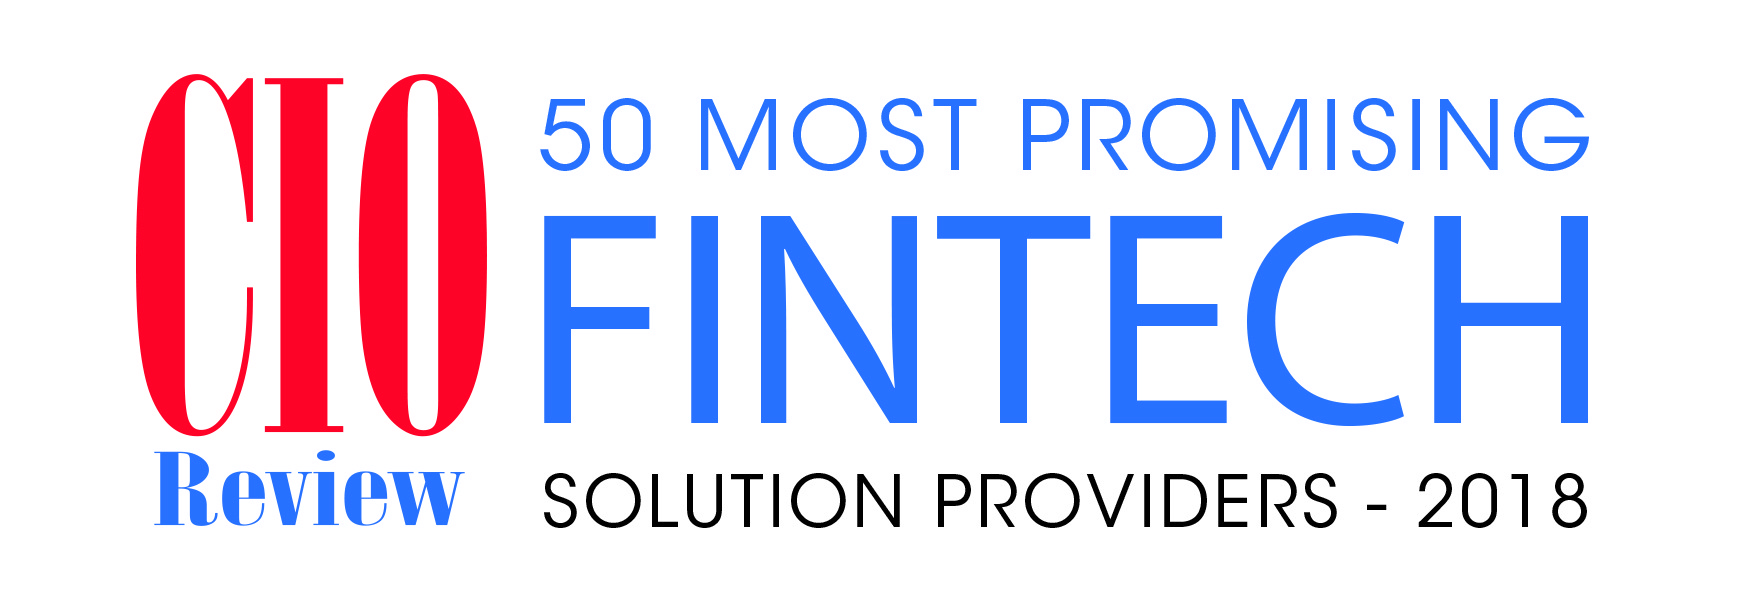 IdentityMind Global Secures Two Top Industry Awards: CIO Review's 50 Most Promising FinTech Solution Providers and Disruptor Daily's 10 RegTech Companies Making Waves in the Industry